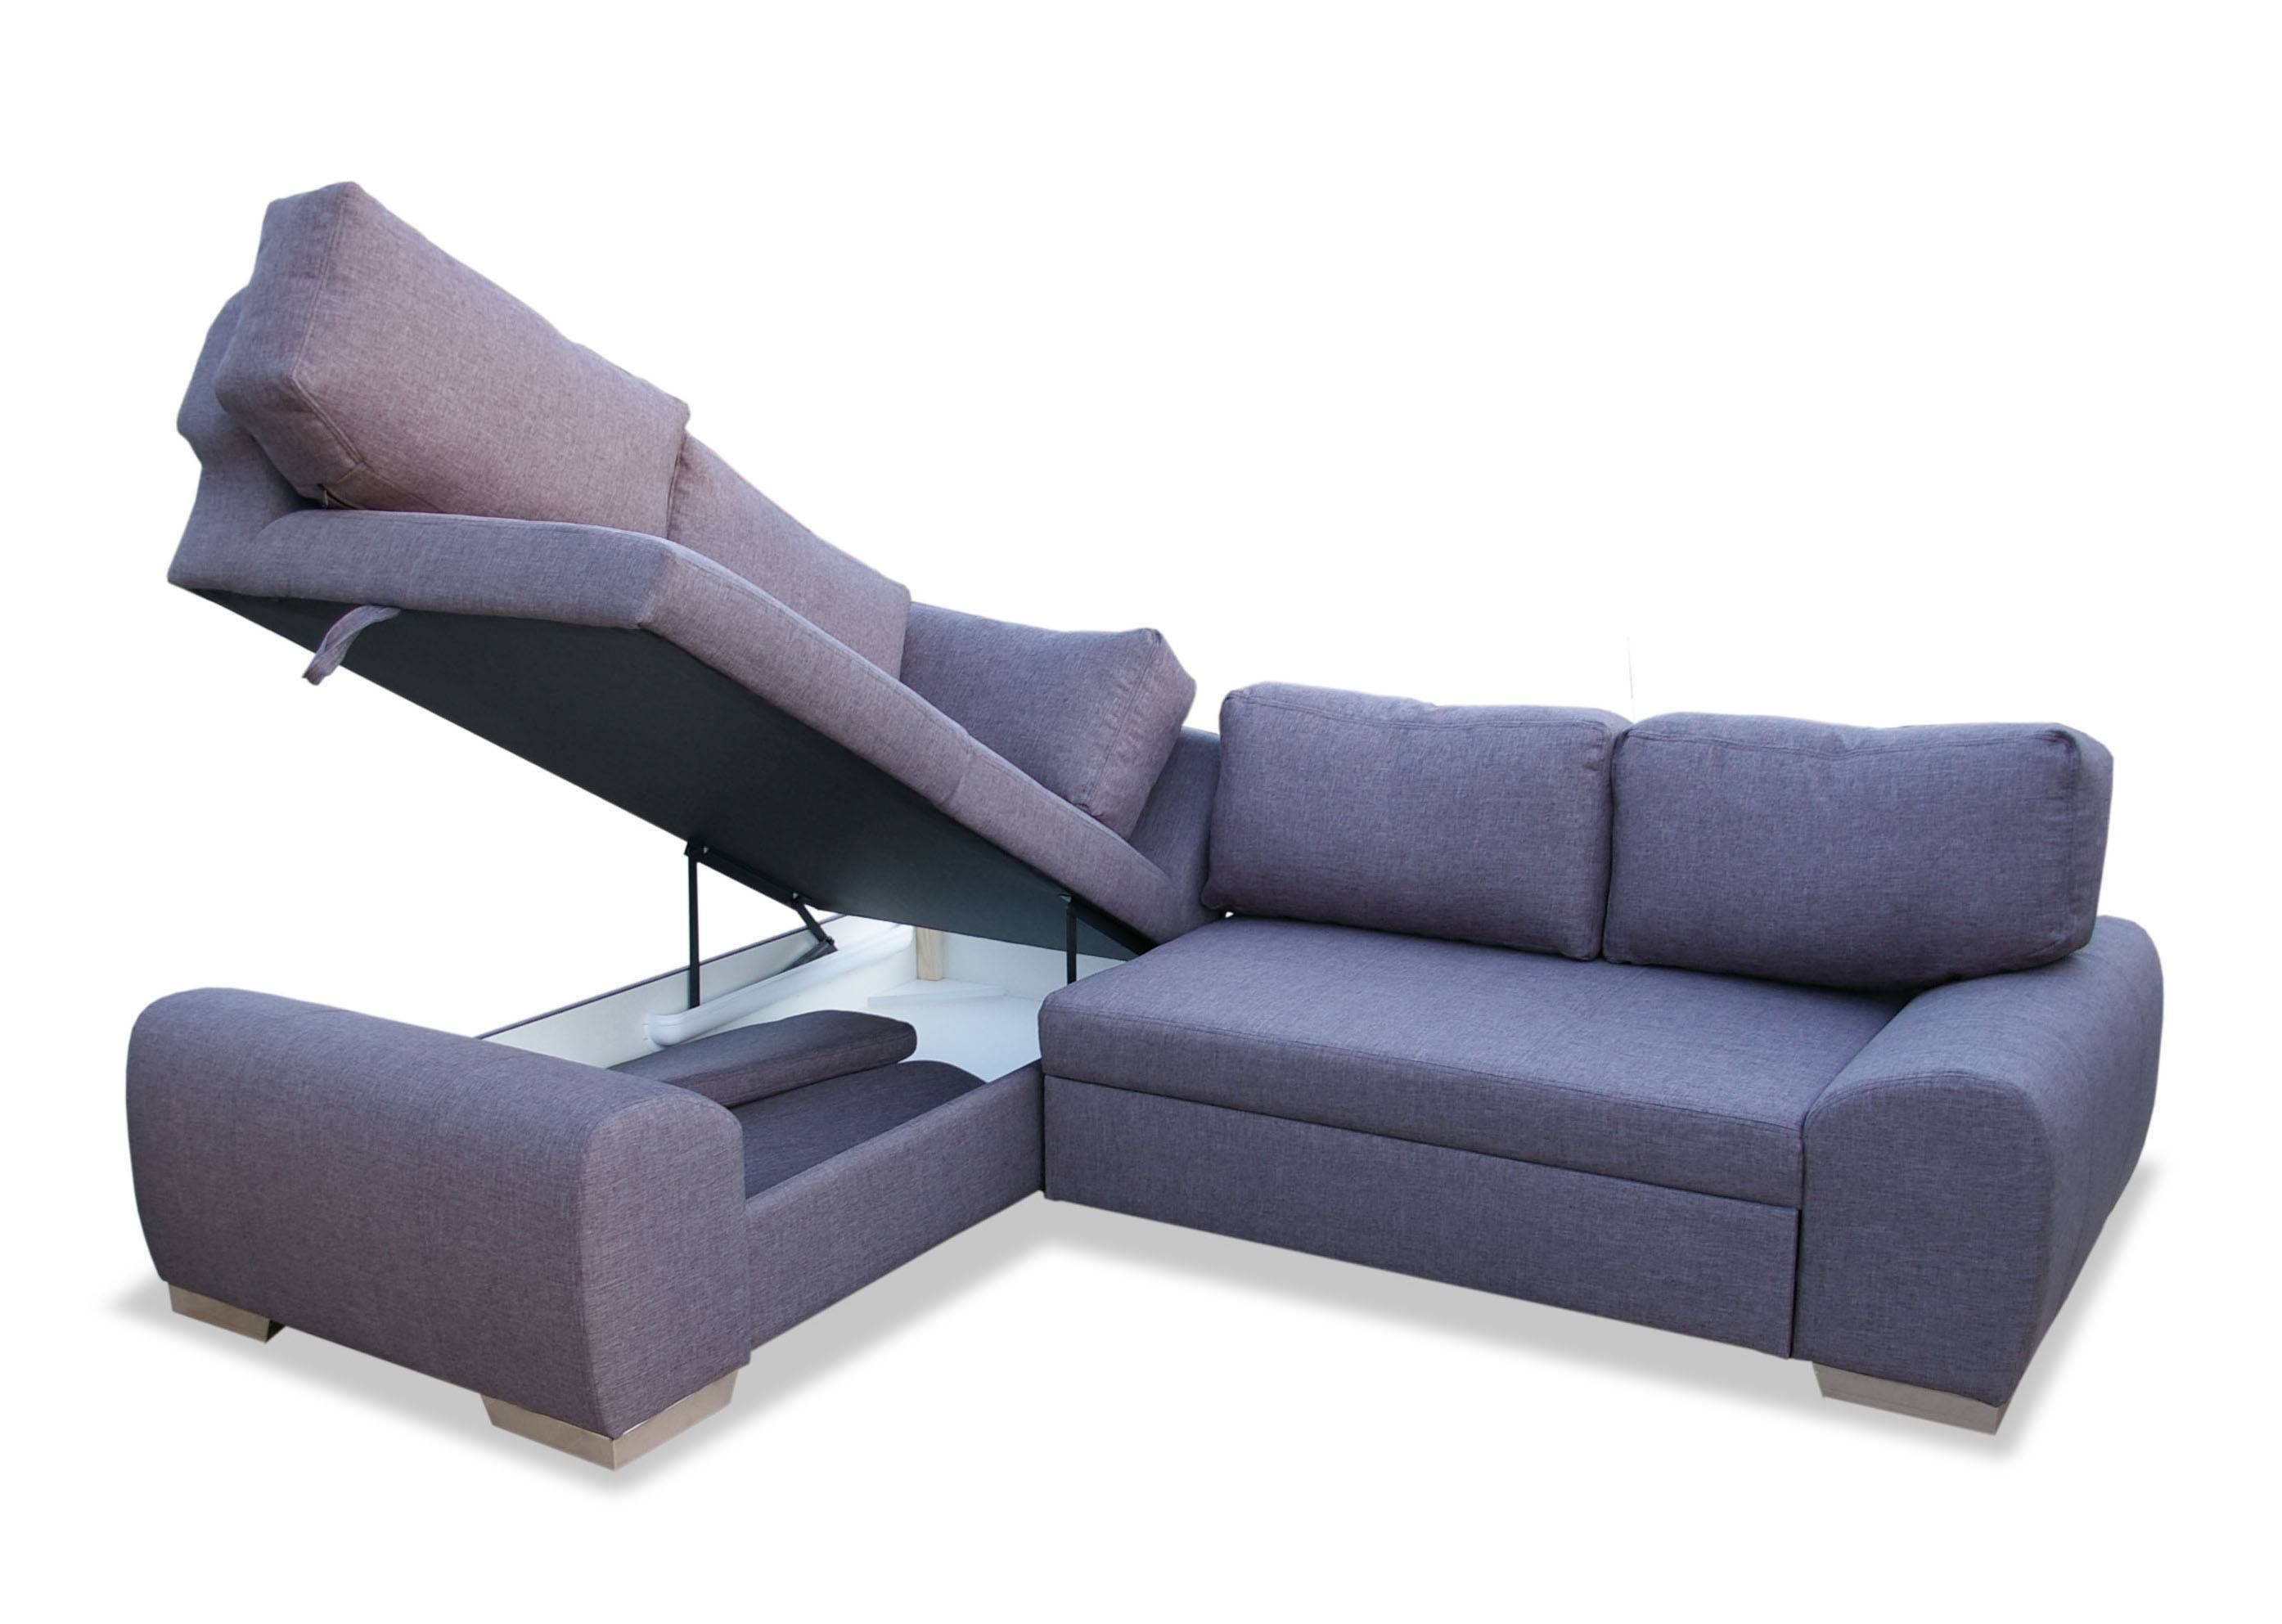 Milan Corner Sofa Bed With Storage Right Hand Grey – S3net Within Small Sectional Sofas With Storage (View 5 of 15)